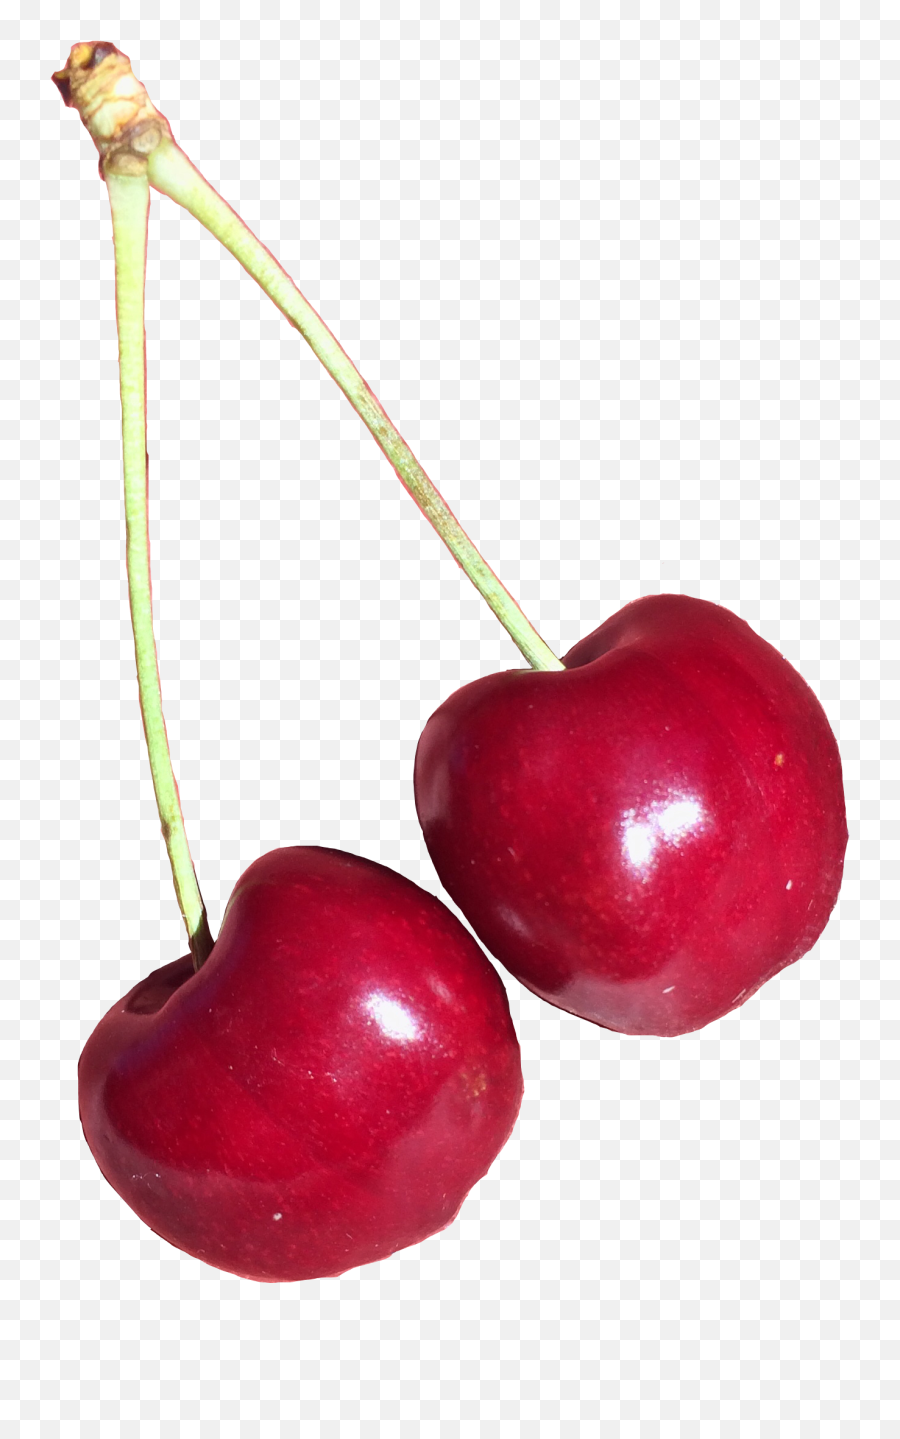 What does cherry emoji mean